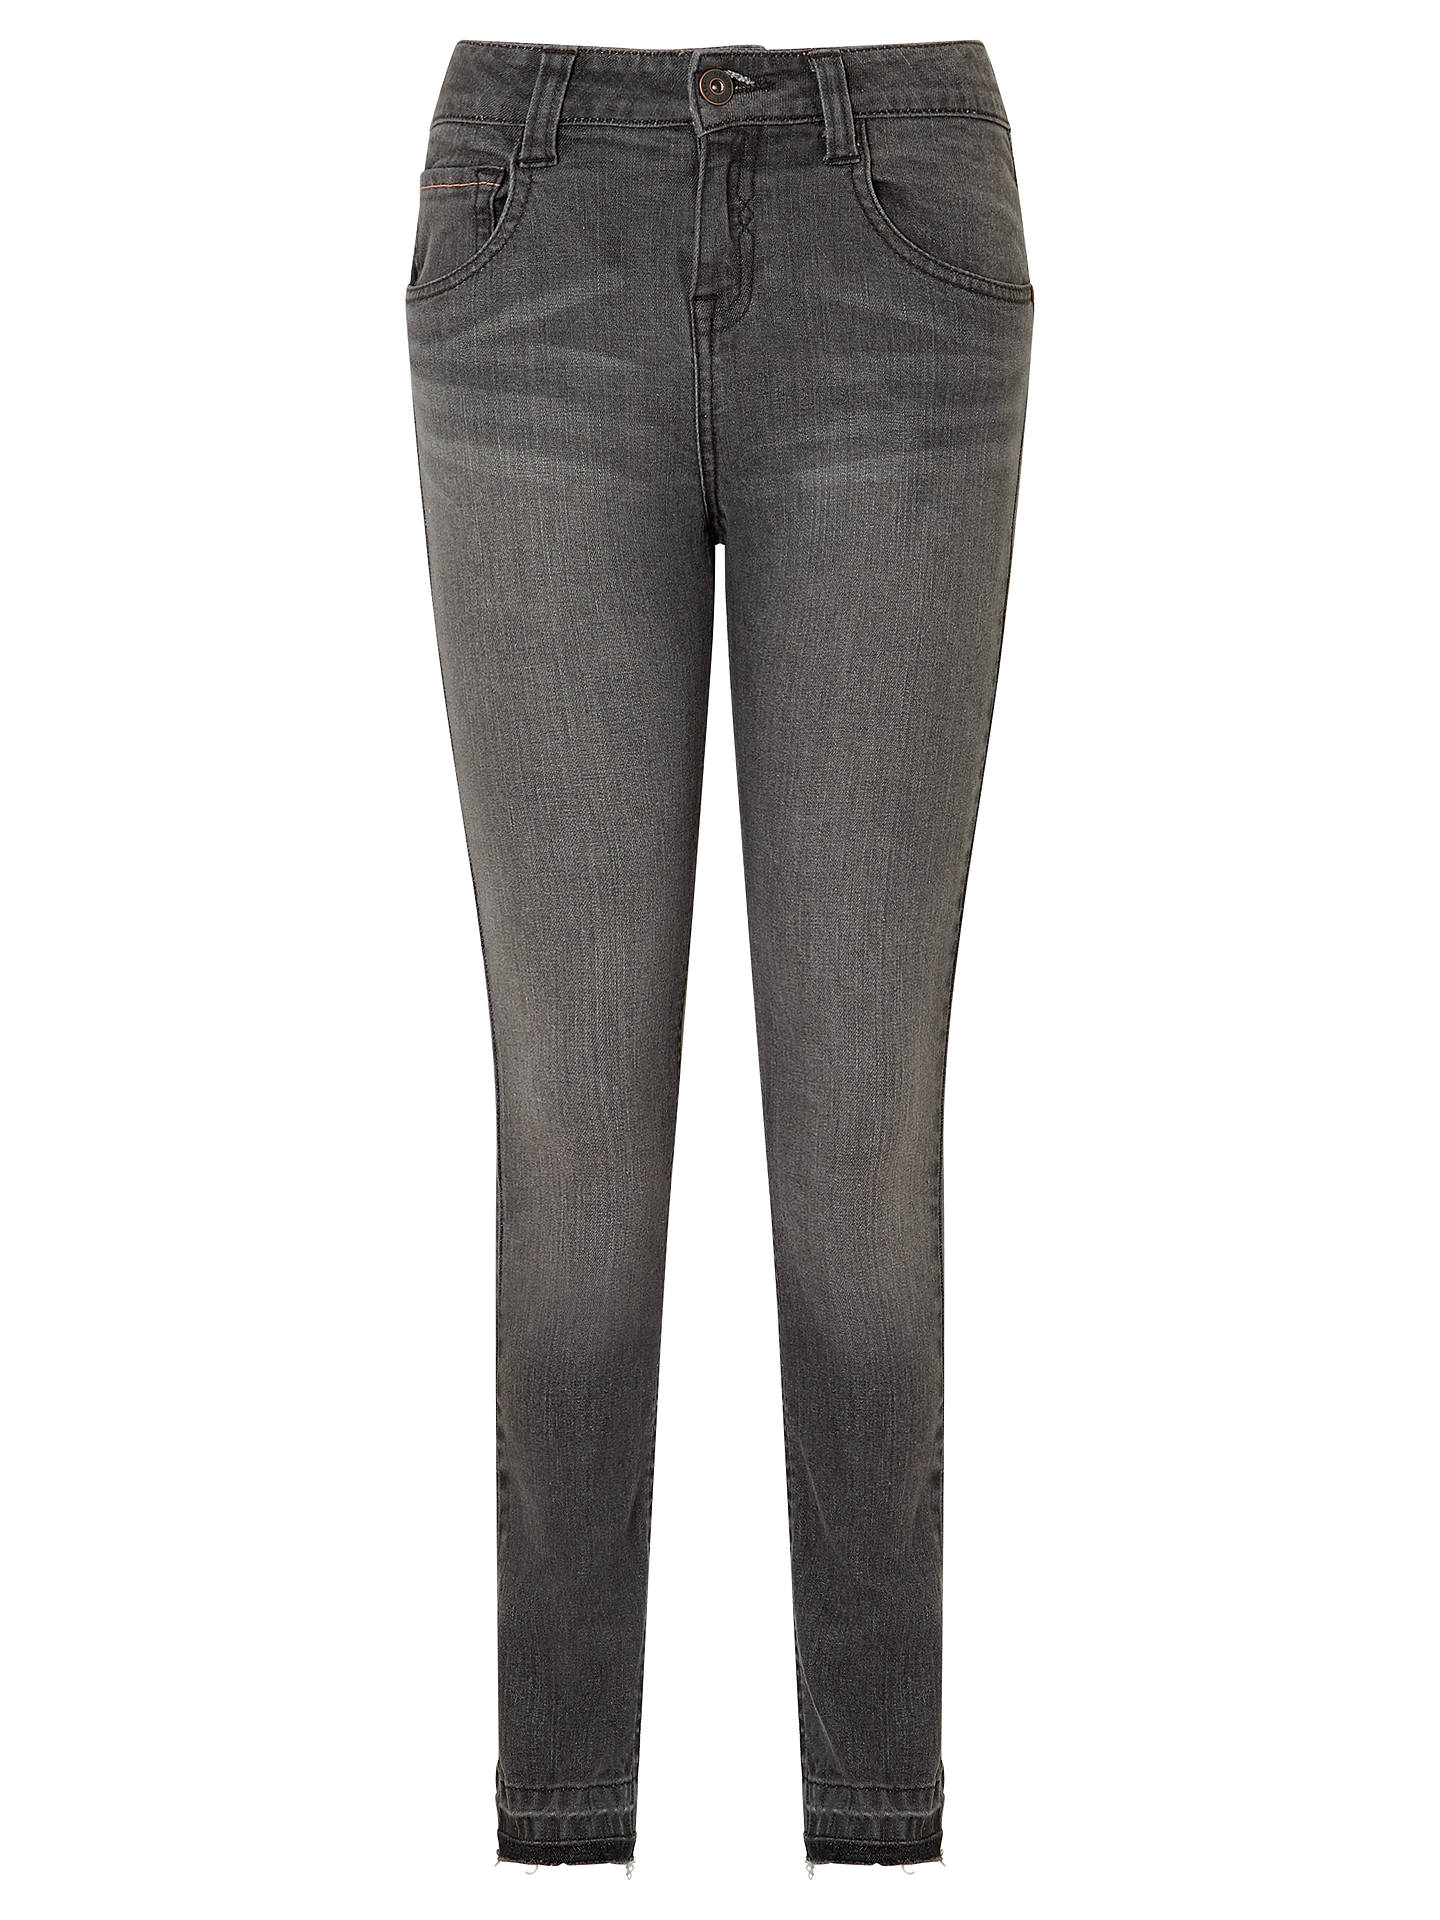 BuyJohn Lewis & Partners Girls' Distressed Jeans, Grey, 8 years Online at johnlewis.com